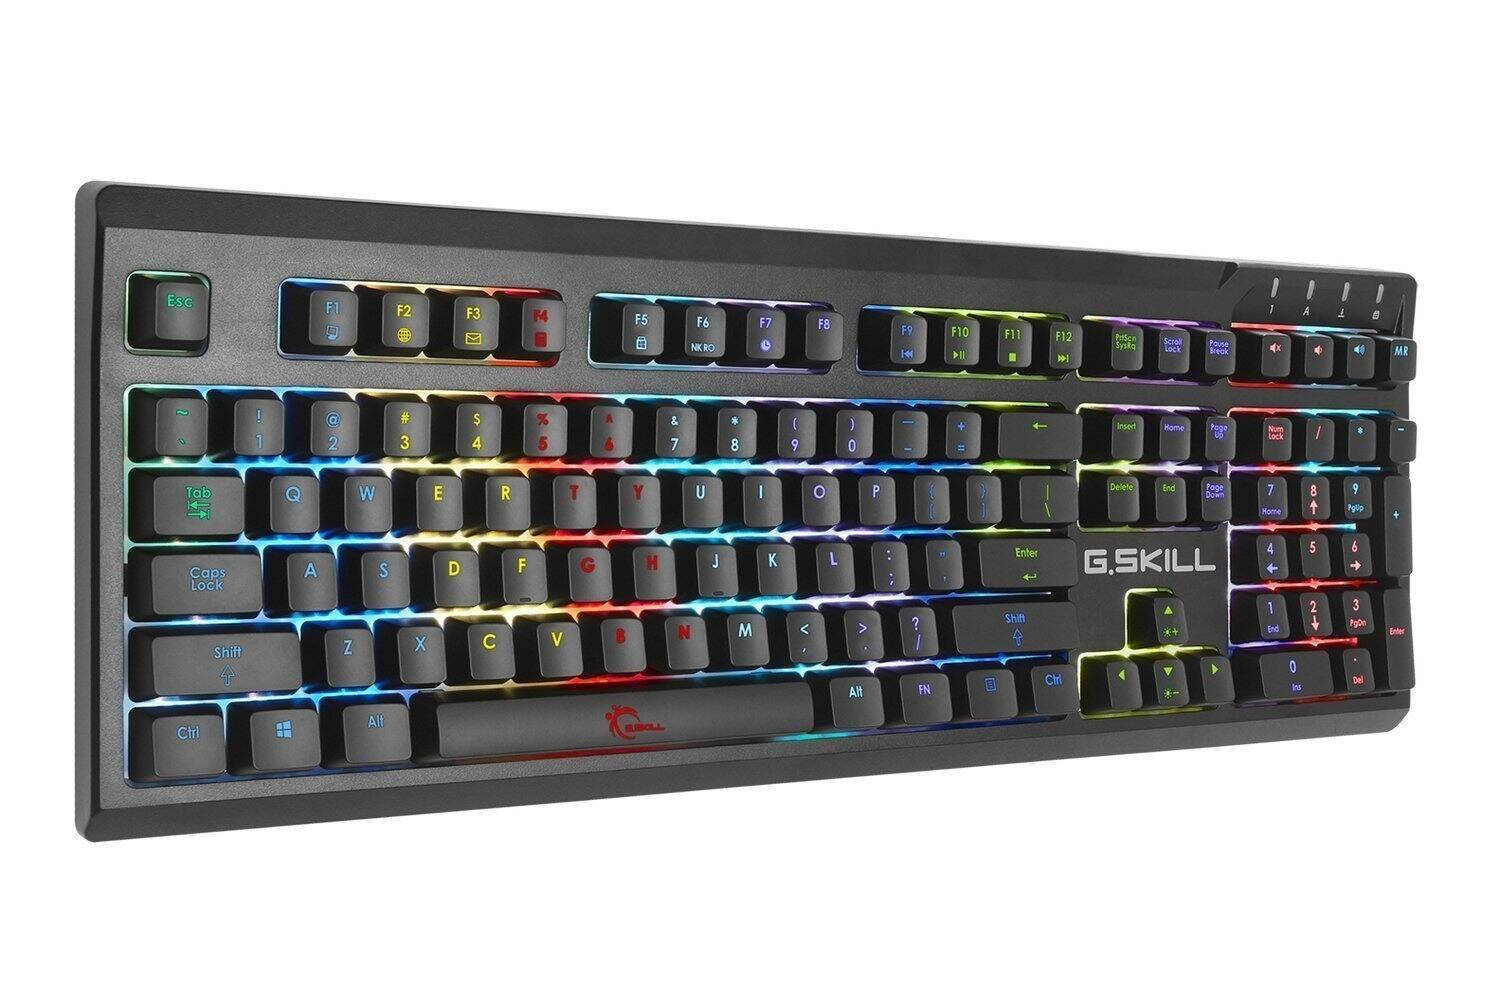 G. Skill RIPJAWS KM570 RGB Minimalistic Fully Utilized Mechanical Gaming Keyboard, Cherry MX Speed Silver - $47.99 amazon.com